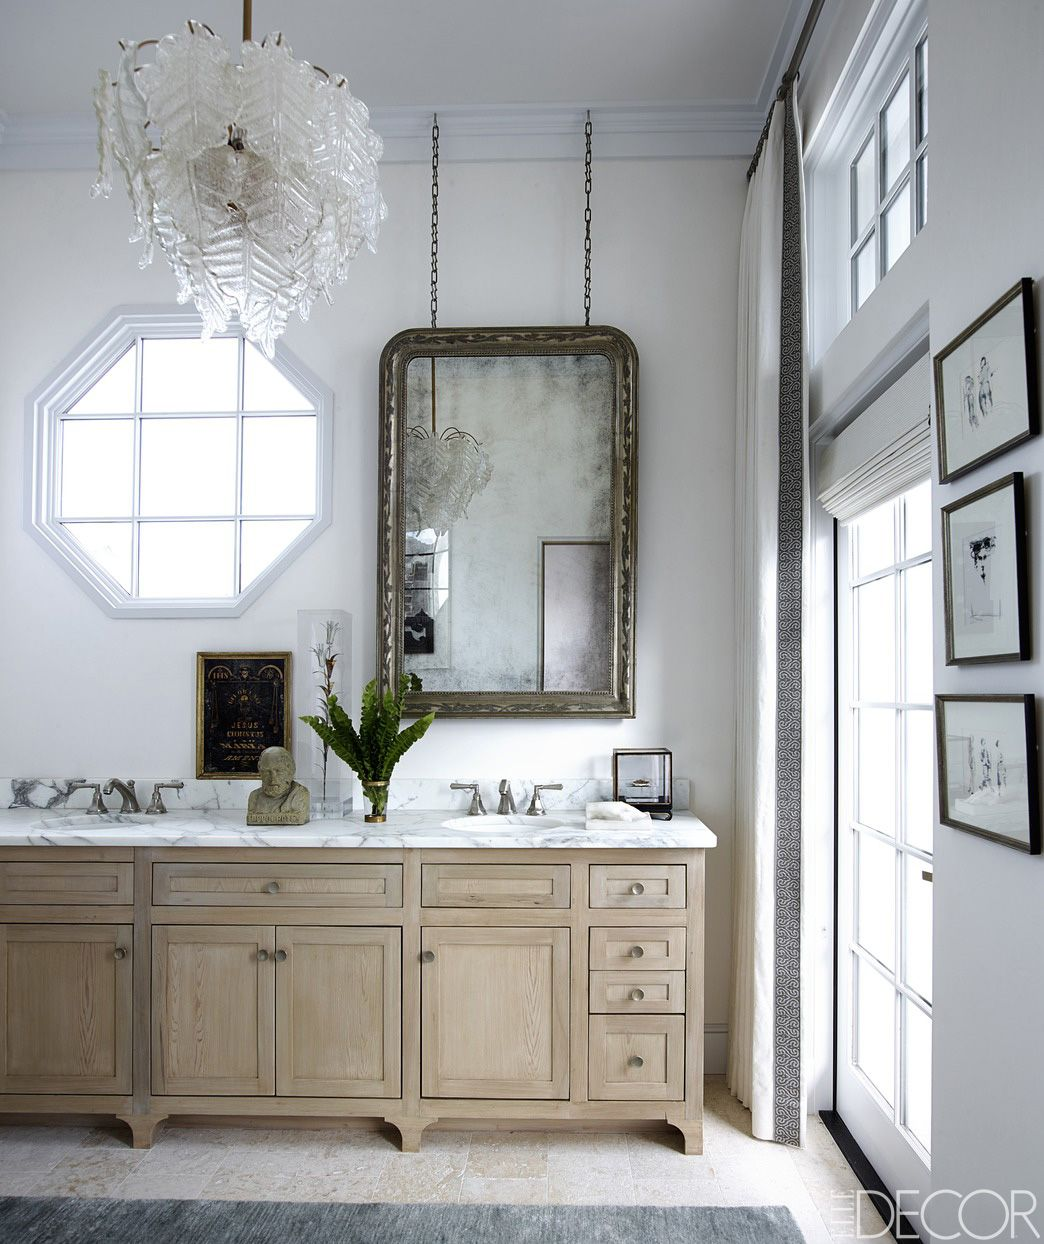 Custom Made Cabinetry, Sink Fittings By Rohl, And A Silver Leafed Mirror